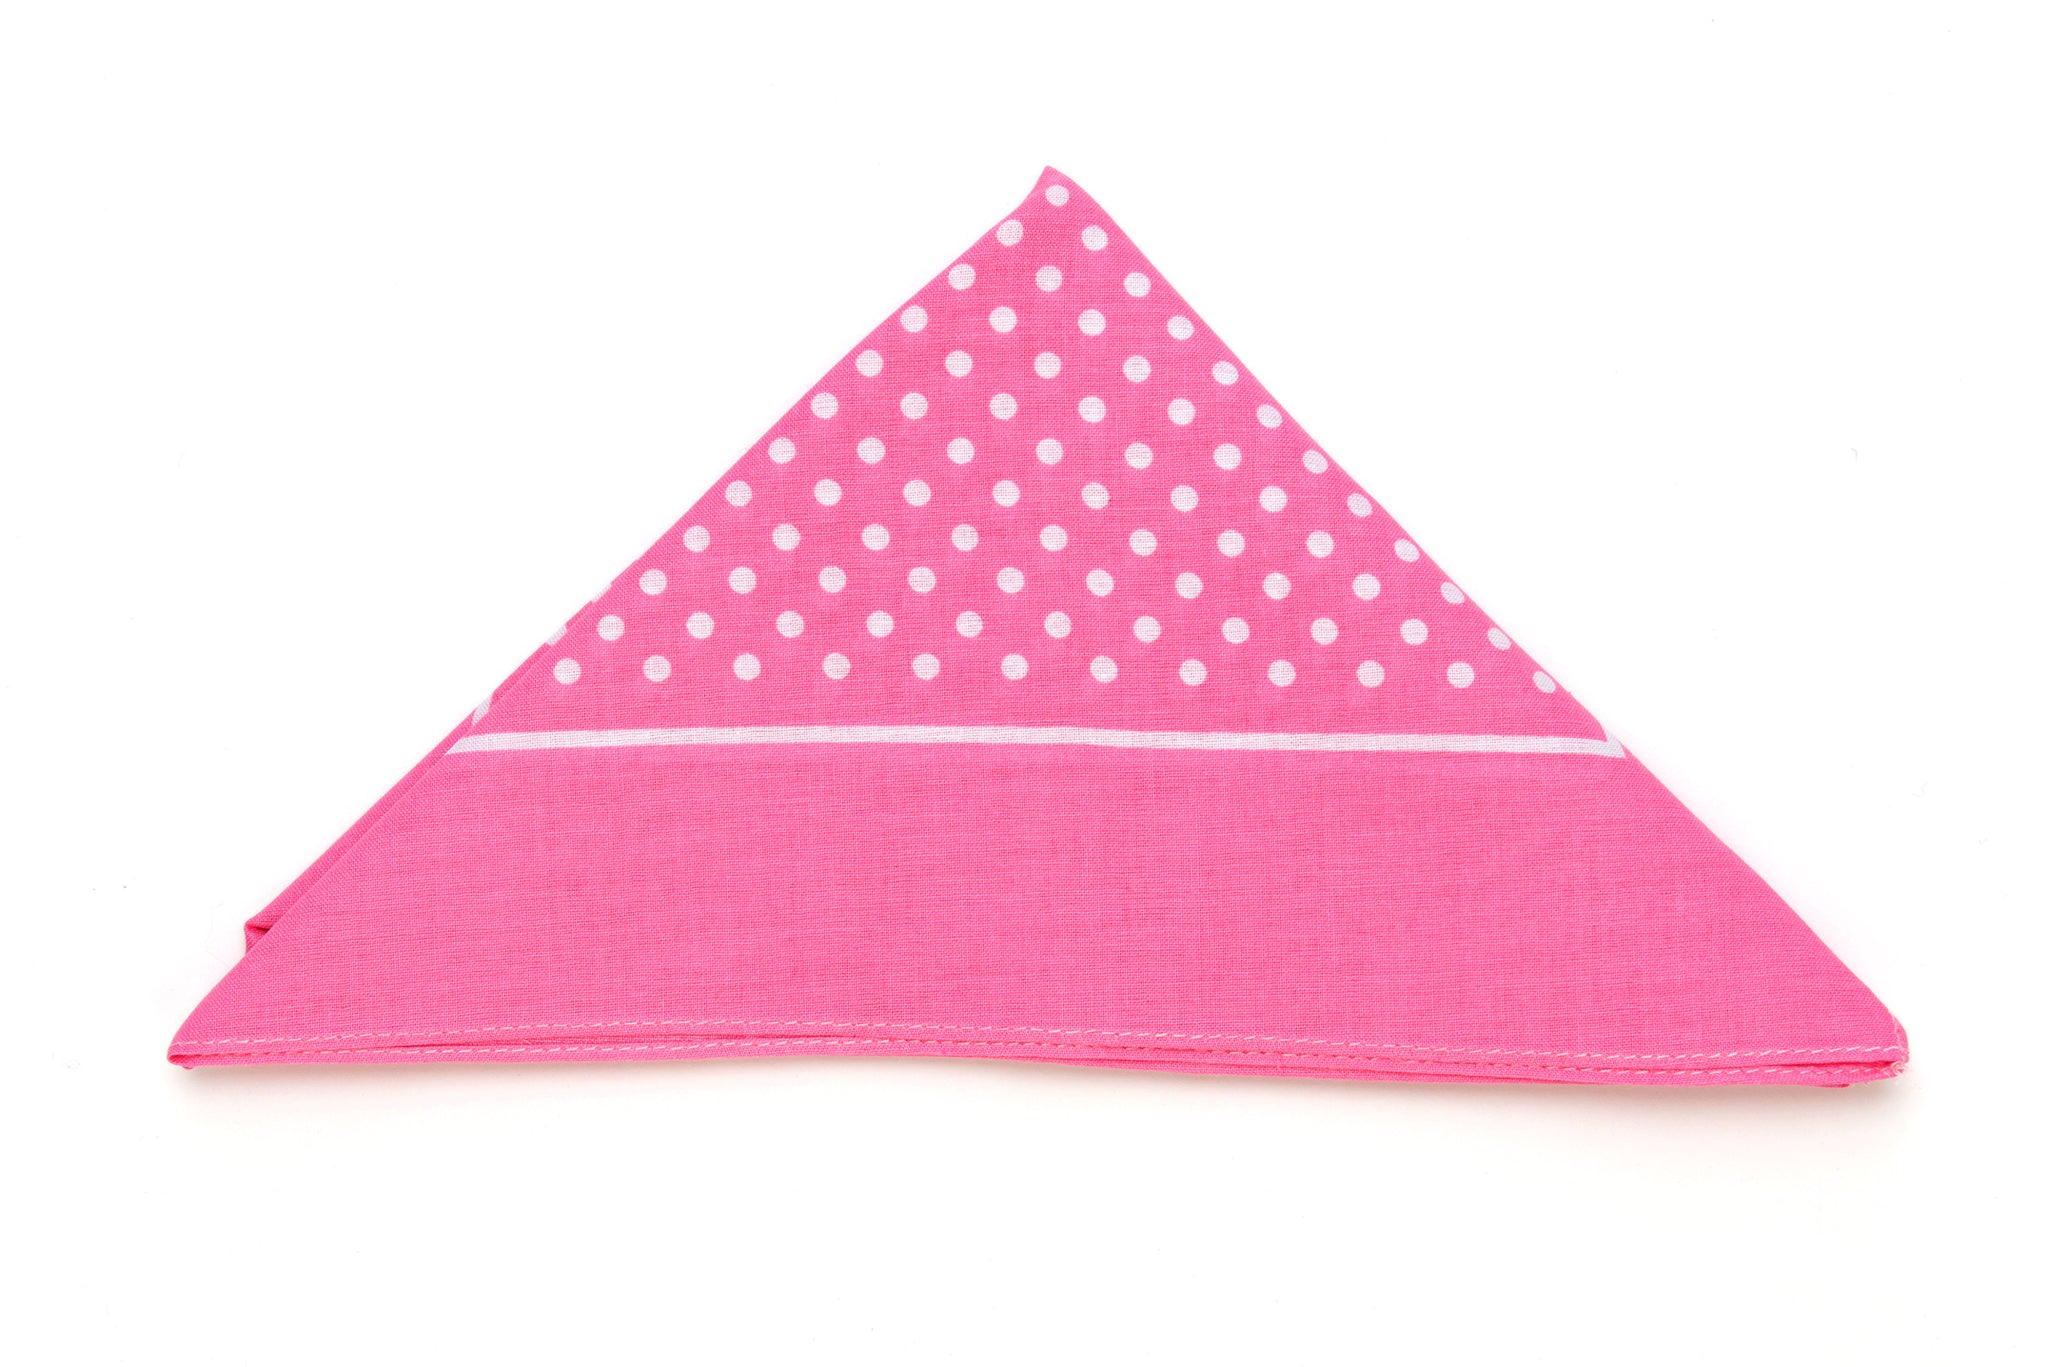 Regent - Cotton Hanky - Bandana - Bright Pink with White Spot - Regent Tailoring